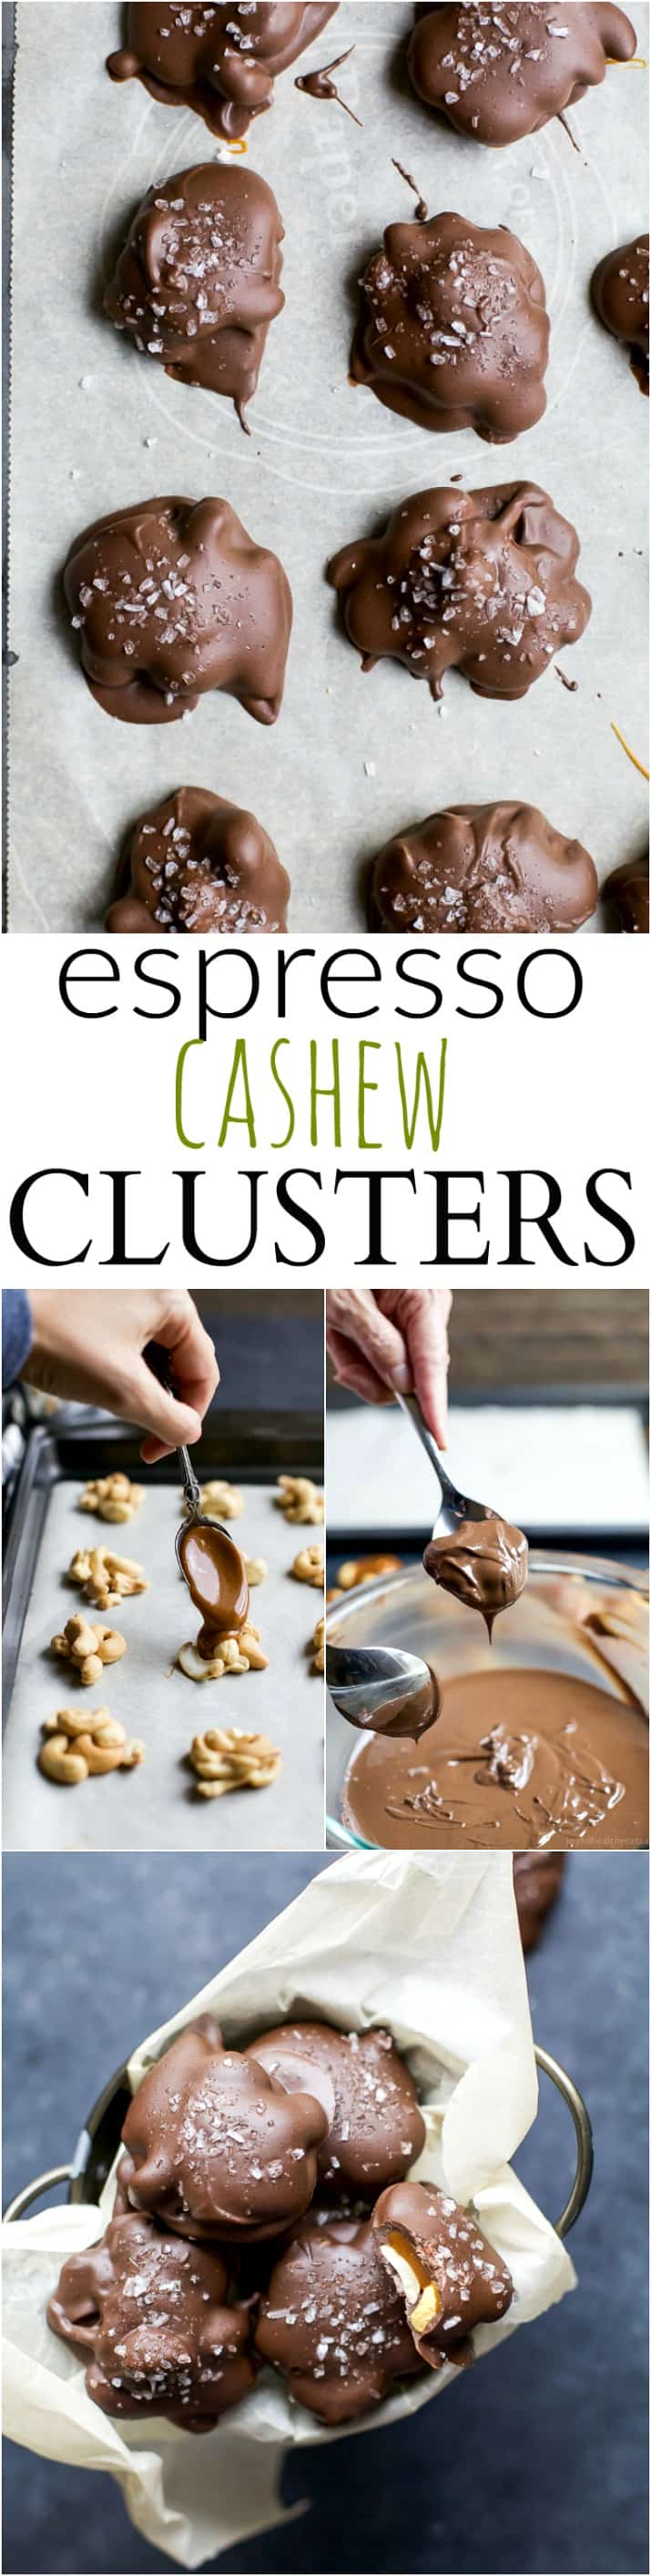 Decadent ESPRESSO CASHEW CLUSTERS using just 4 simple ingredients! These clusters are filled with caramel and covered with an espresso flavored dark chocolate! A holiday treat you'll want to eat all year round! | joyfulhealthyeats.com